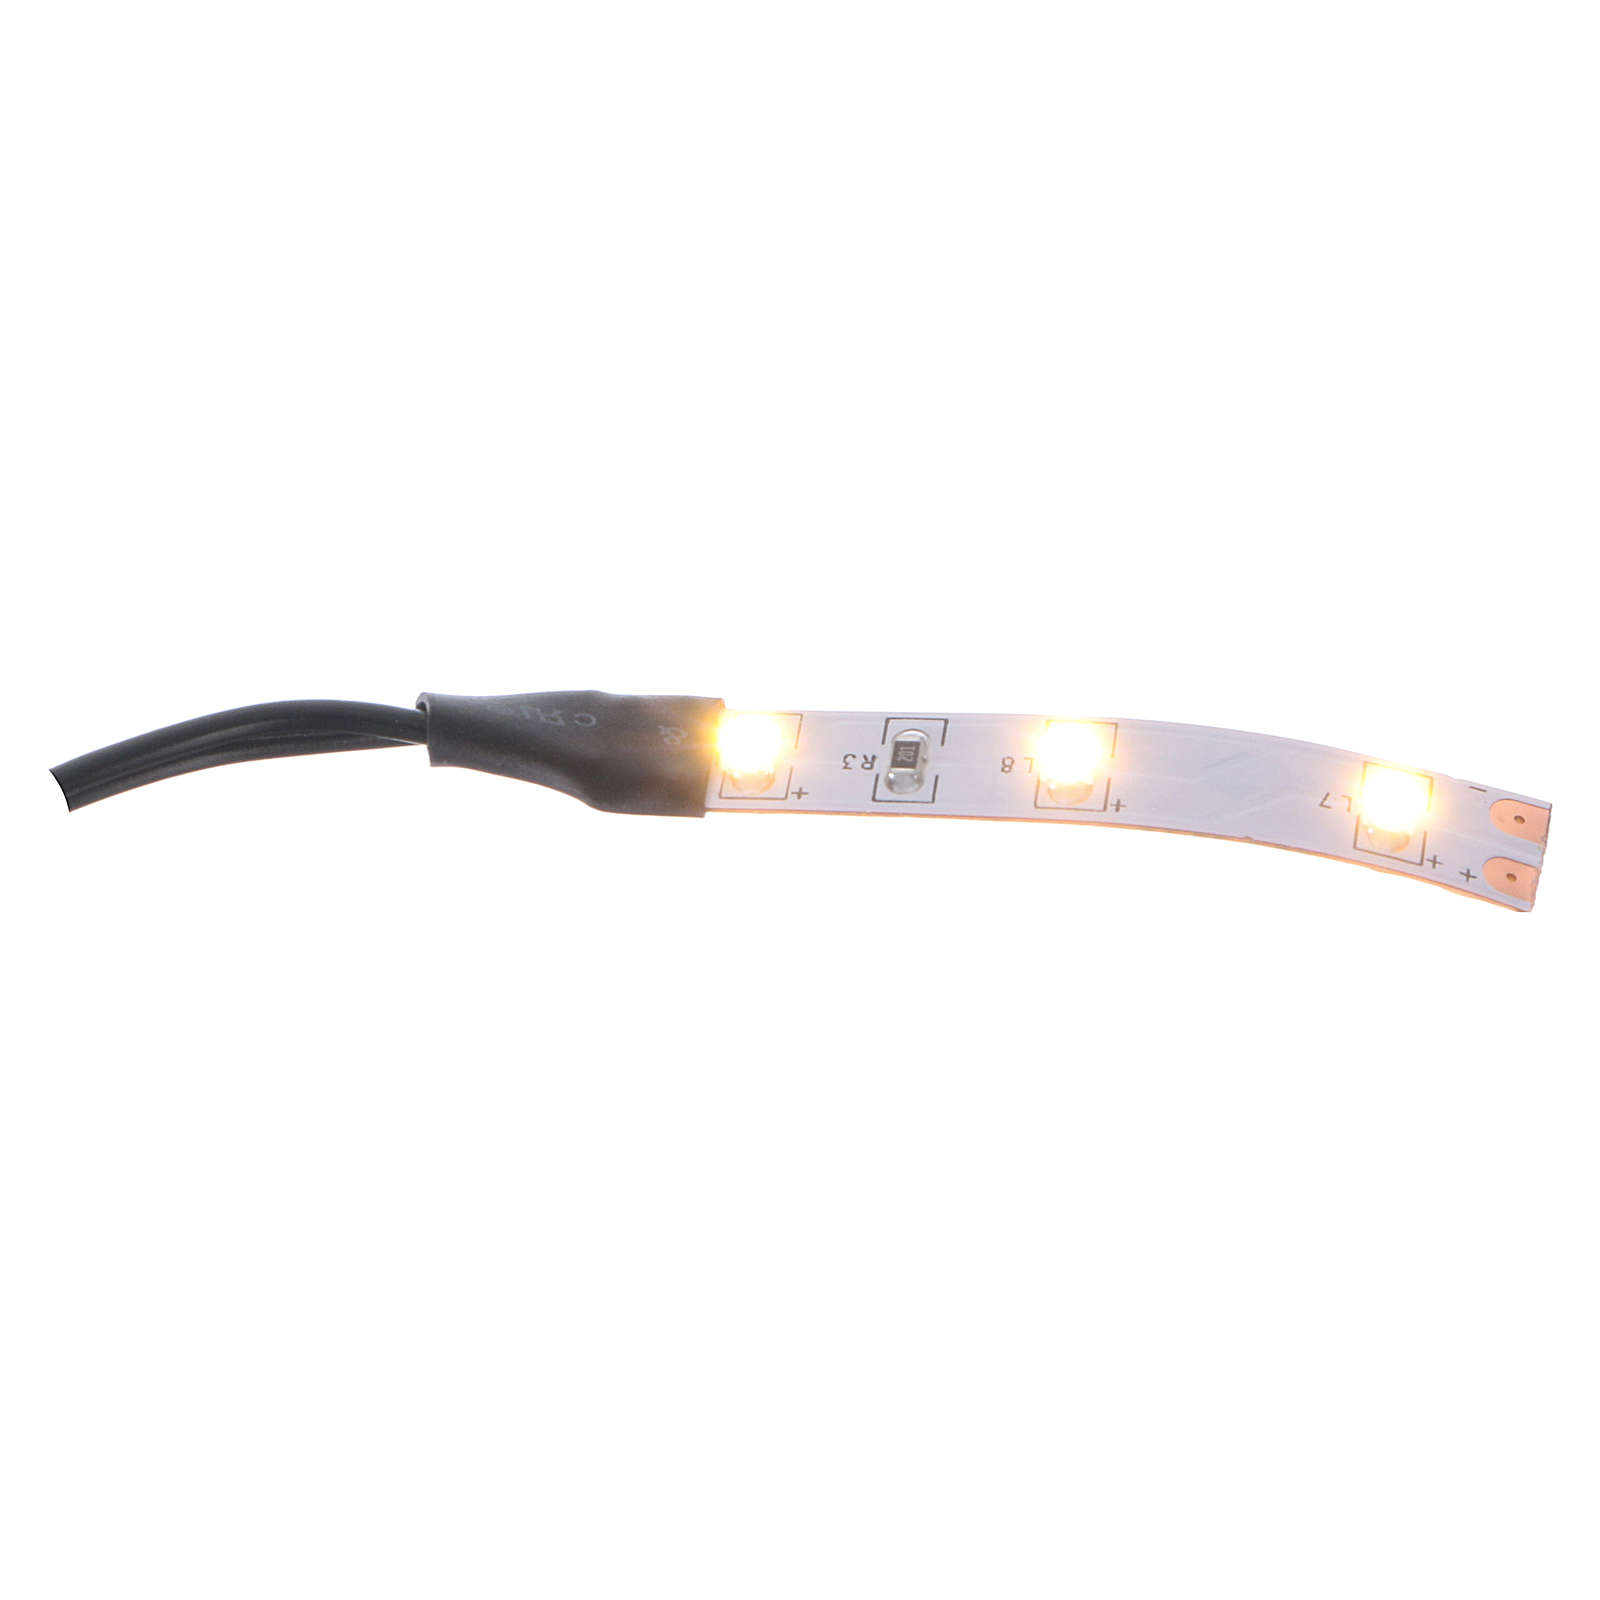 LED strip with 3 lights 0,8x4cm, warm white for Frisalight 4